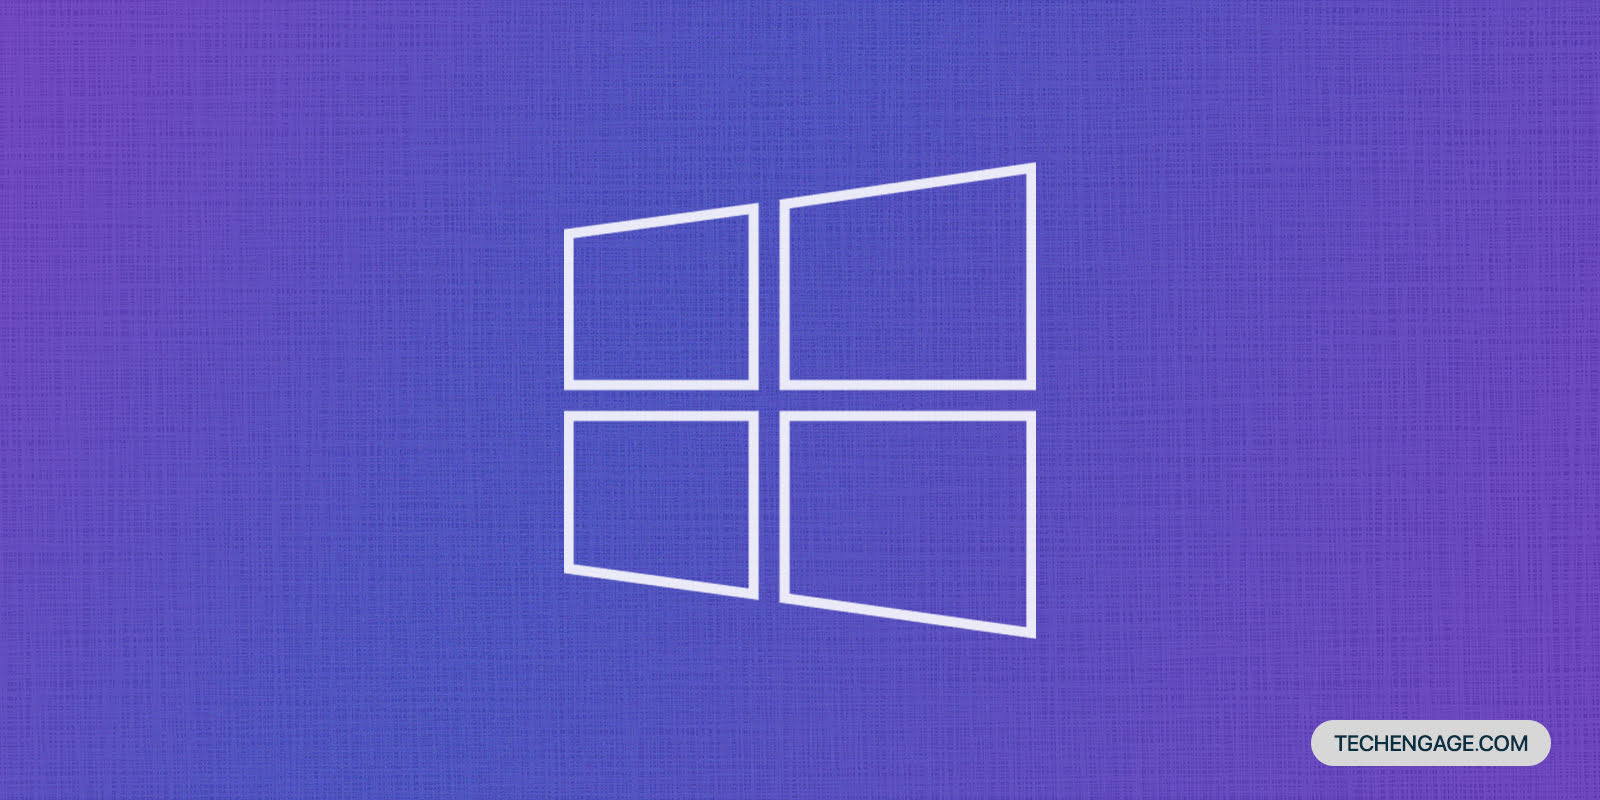 How to check if you have the latest Windows or not